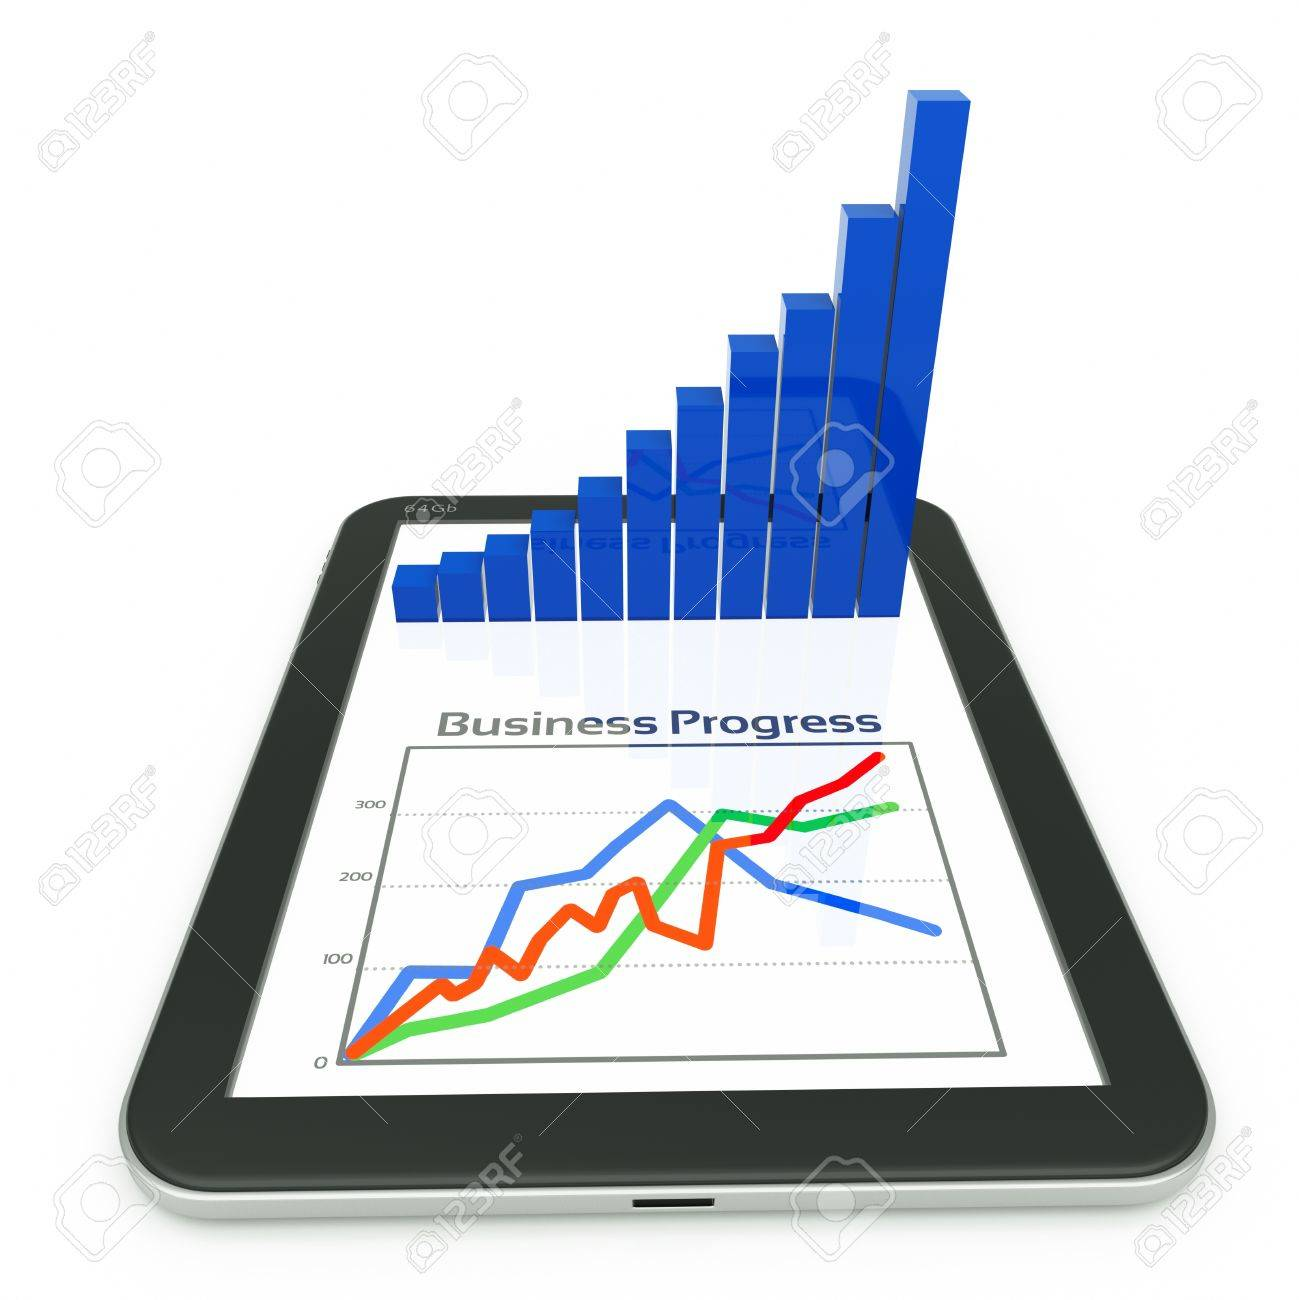 a tablet pc and business diagram as a concept of process of business development Stock Photo - 12711602